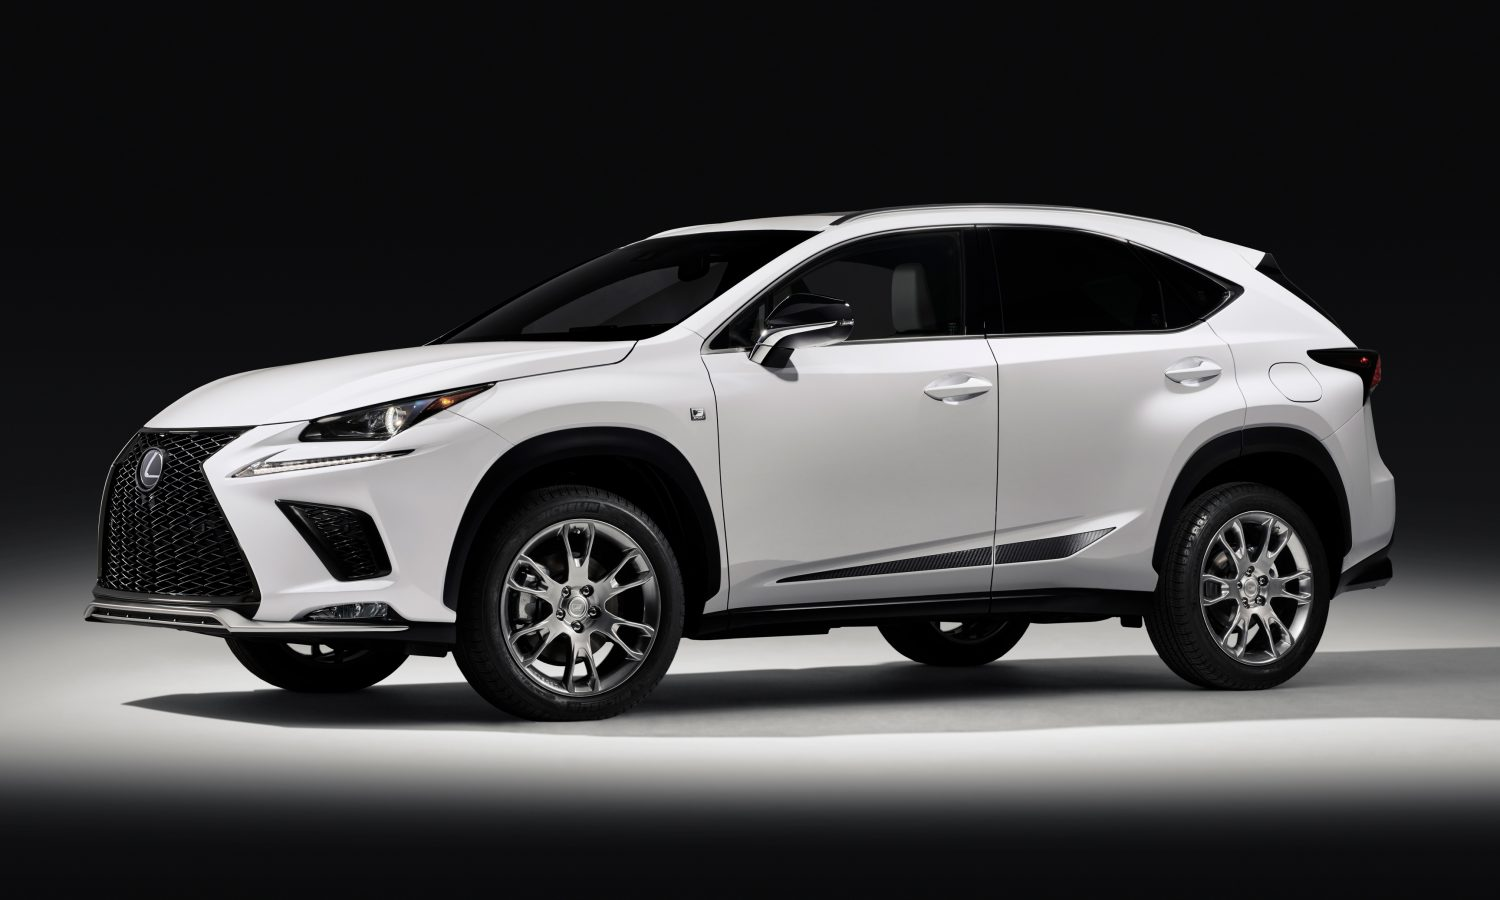 2019 Lexus NX Gets Distinct Styling, Touches with the Black Line Treatment